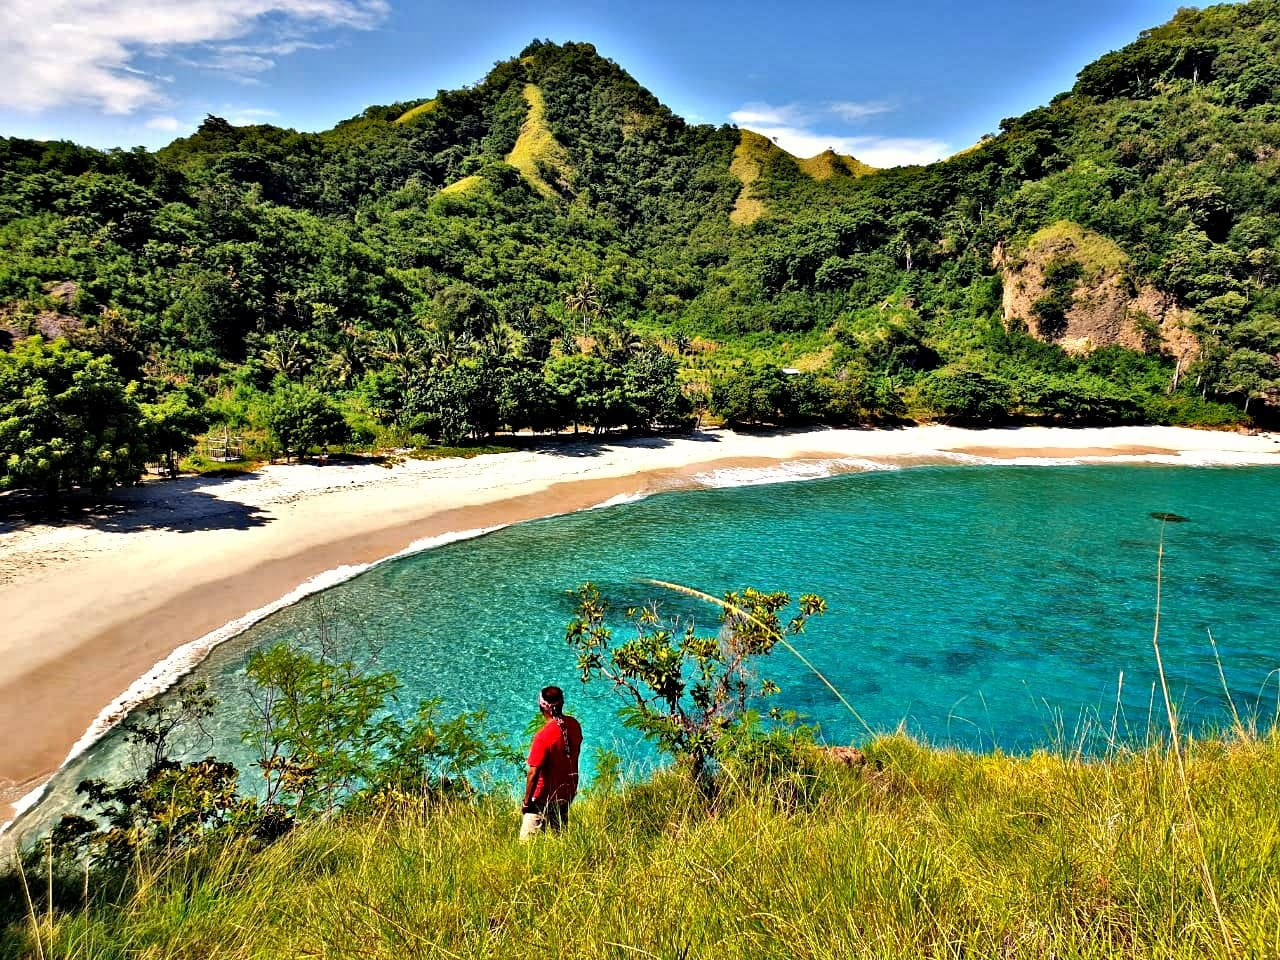 Koka Beach in East Nusa Tenggara promises thrilling adventure